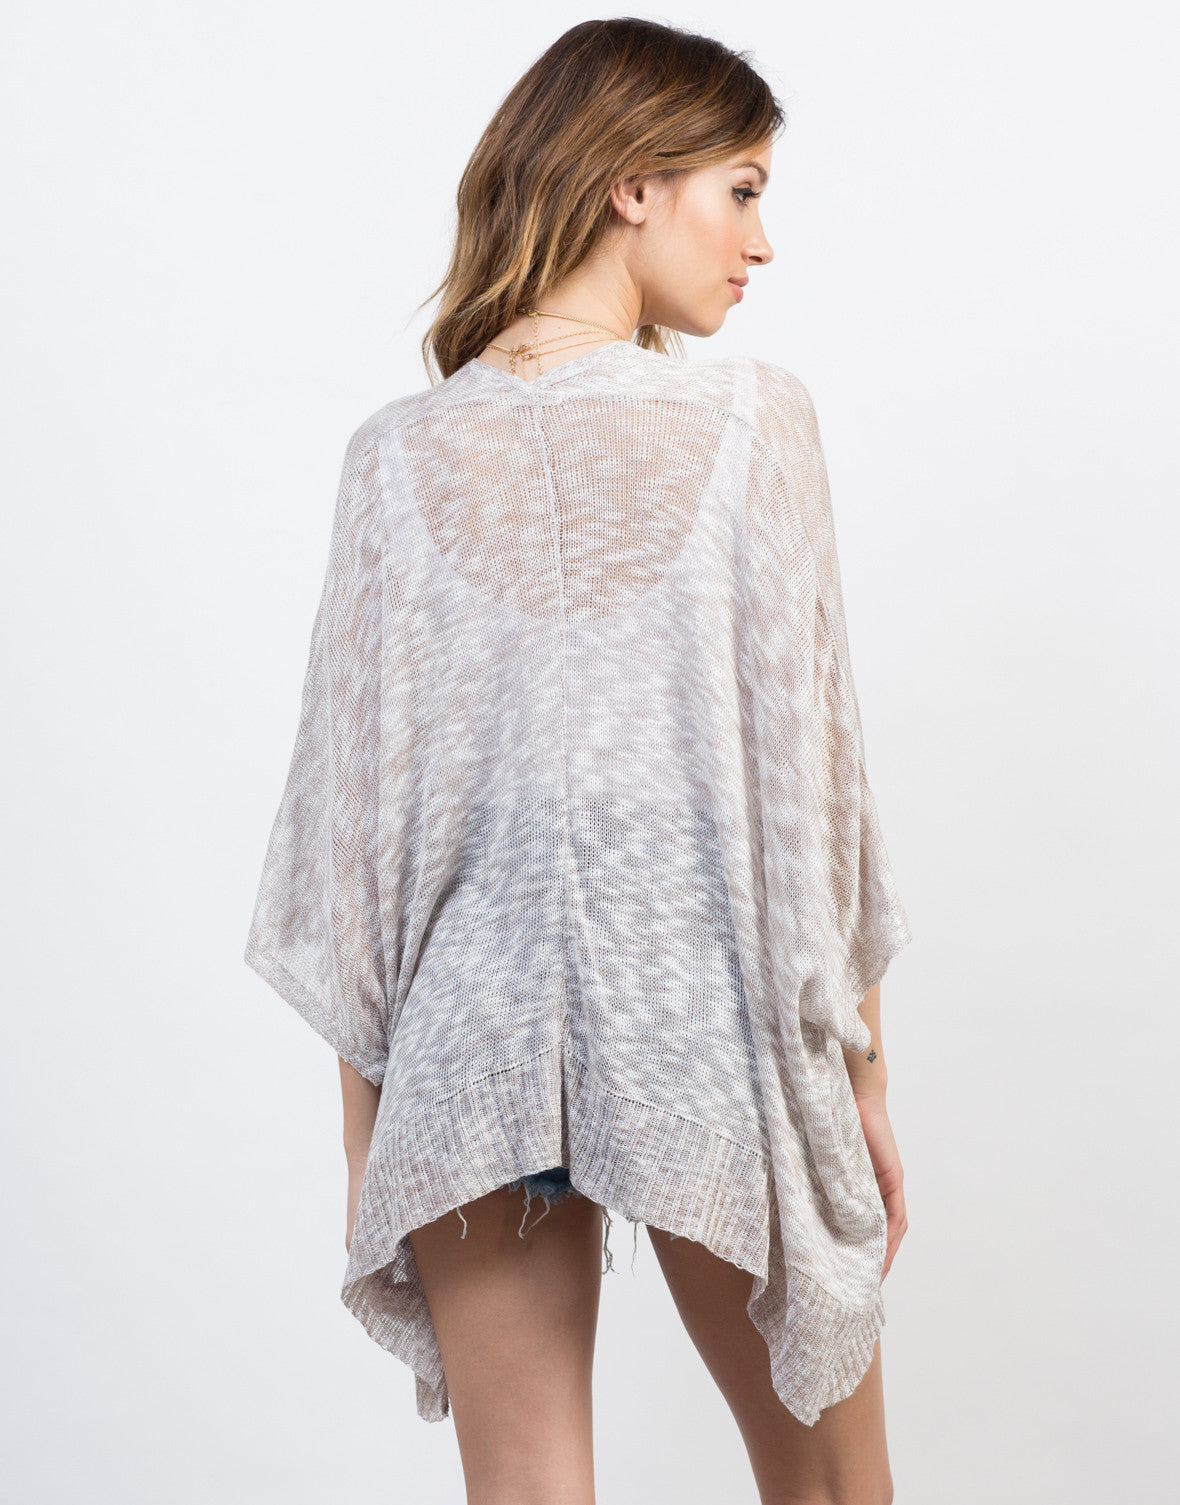 Back View of Open Knitted Cardigan